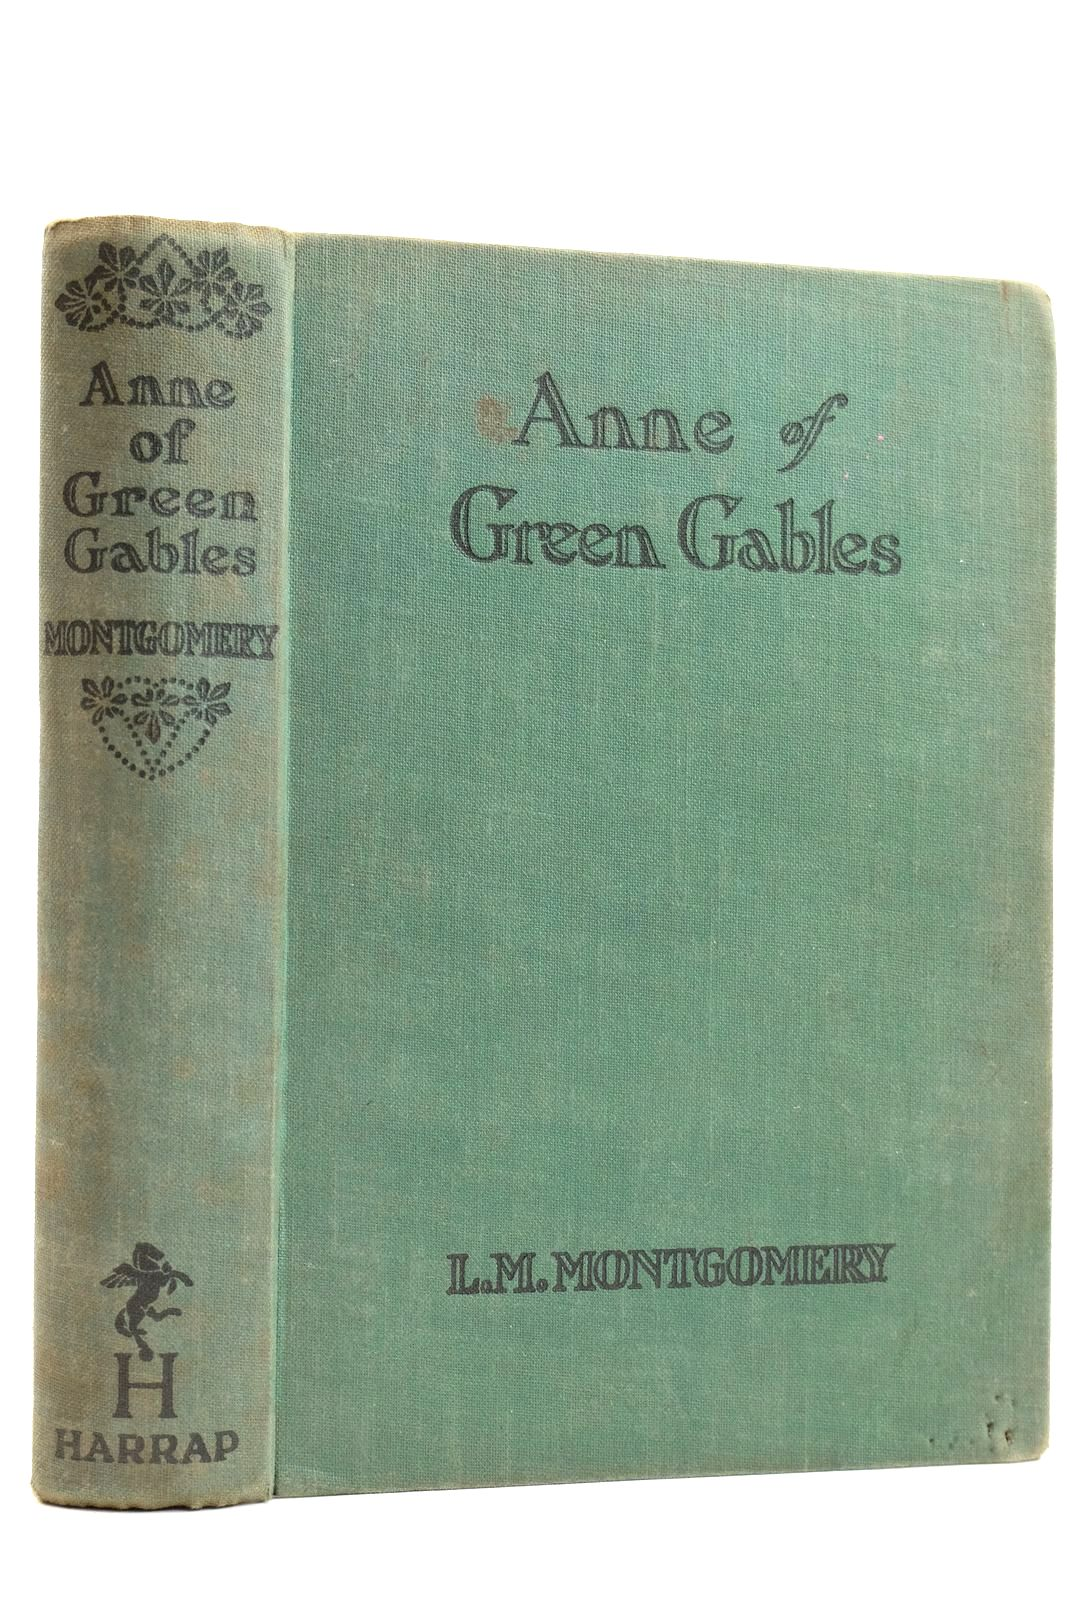 Photo of ANNE OF GREEN GABLES written by Montgomery, L.M. published by George G. Harrap & Co. Ltd. (STOCK CODE: 2131794)  for sale by Stella & Rose's Books